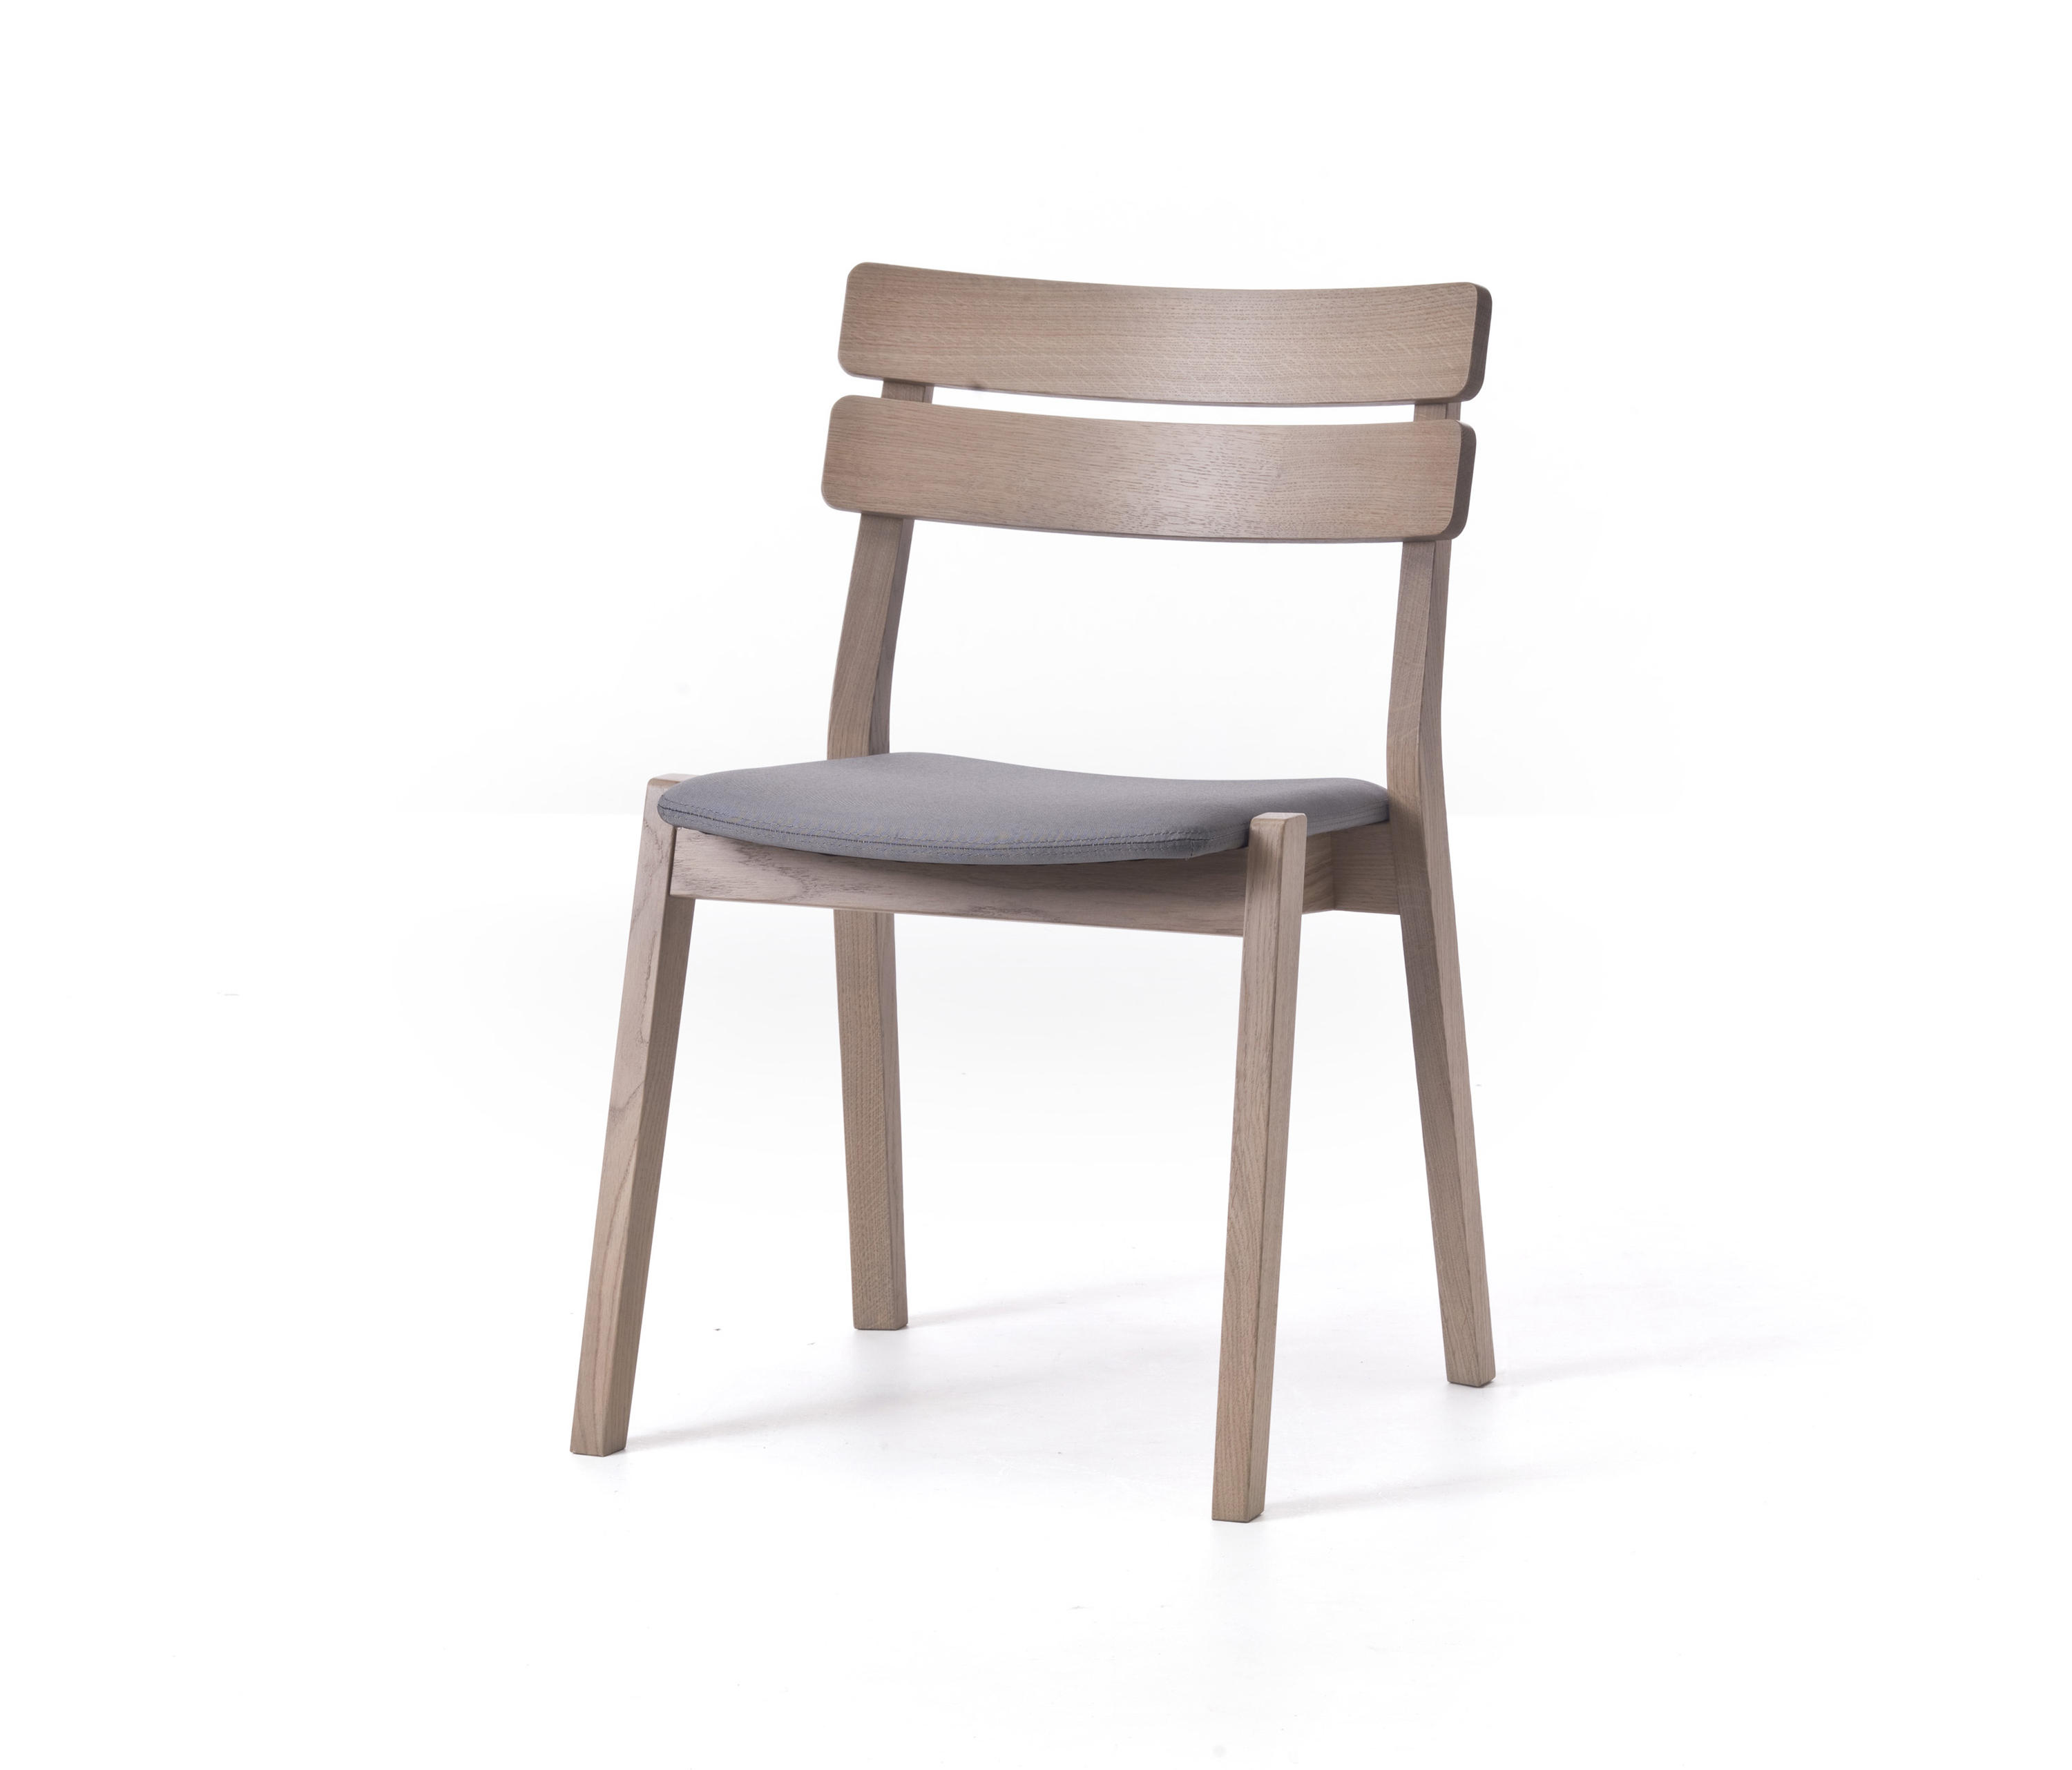 Frame Out 11 By Very Wood | Chairs